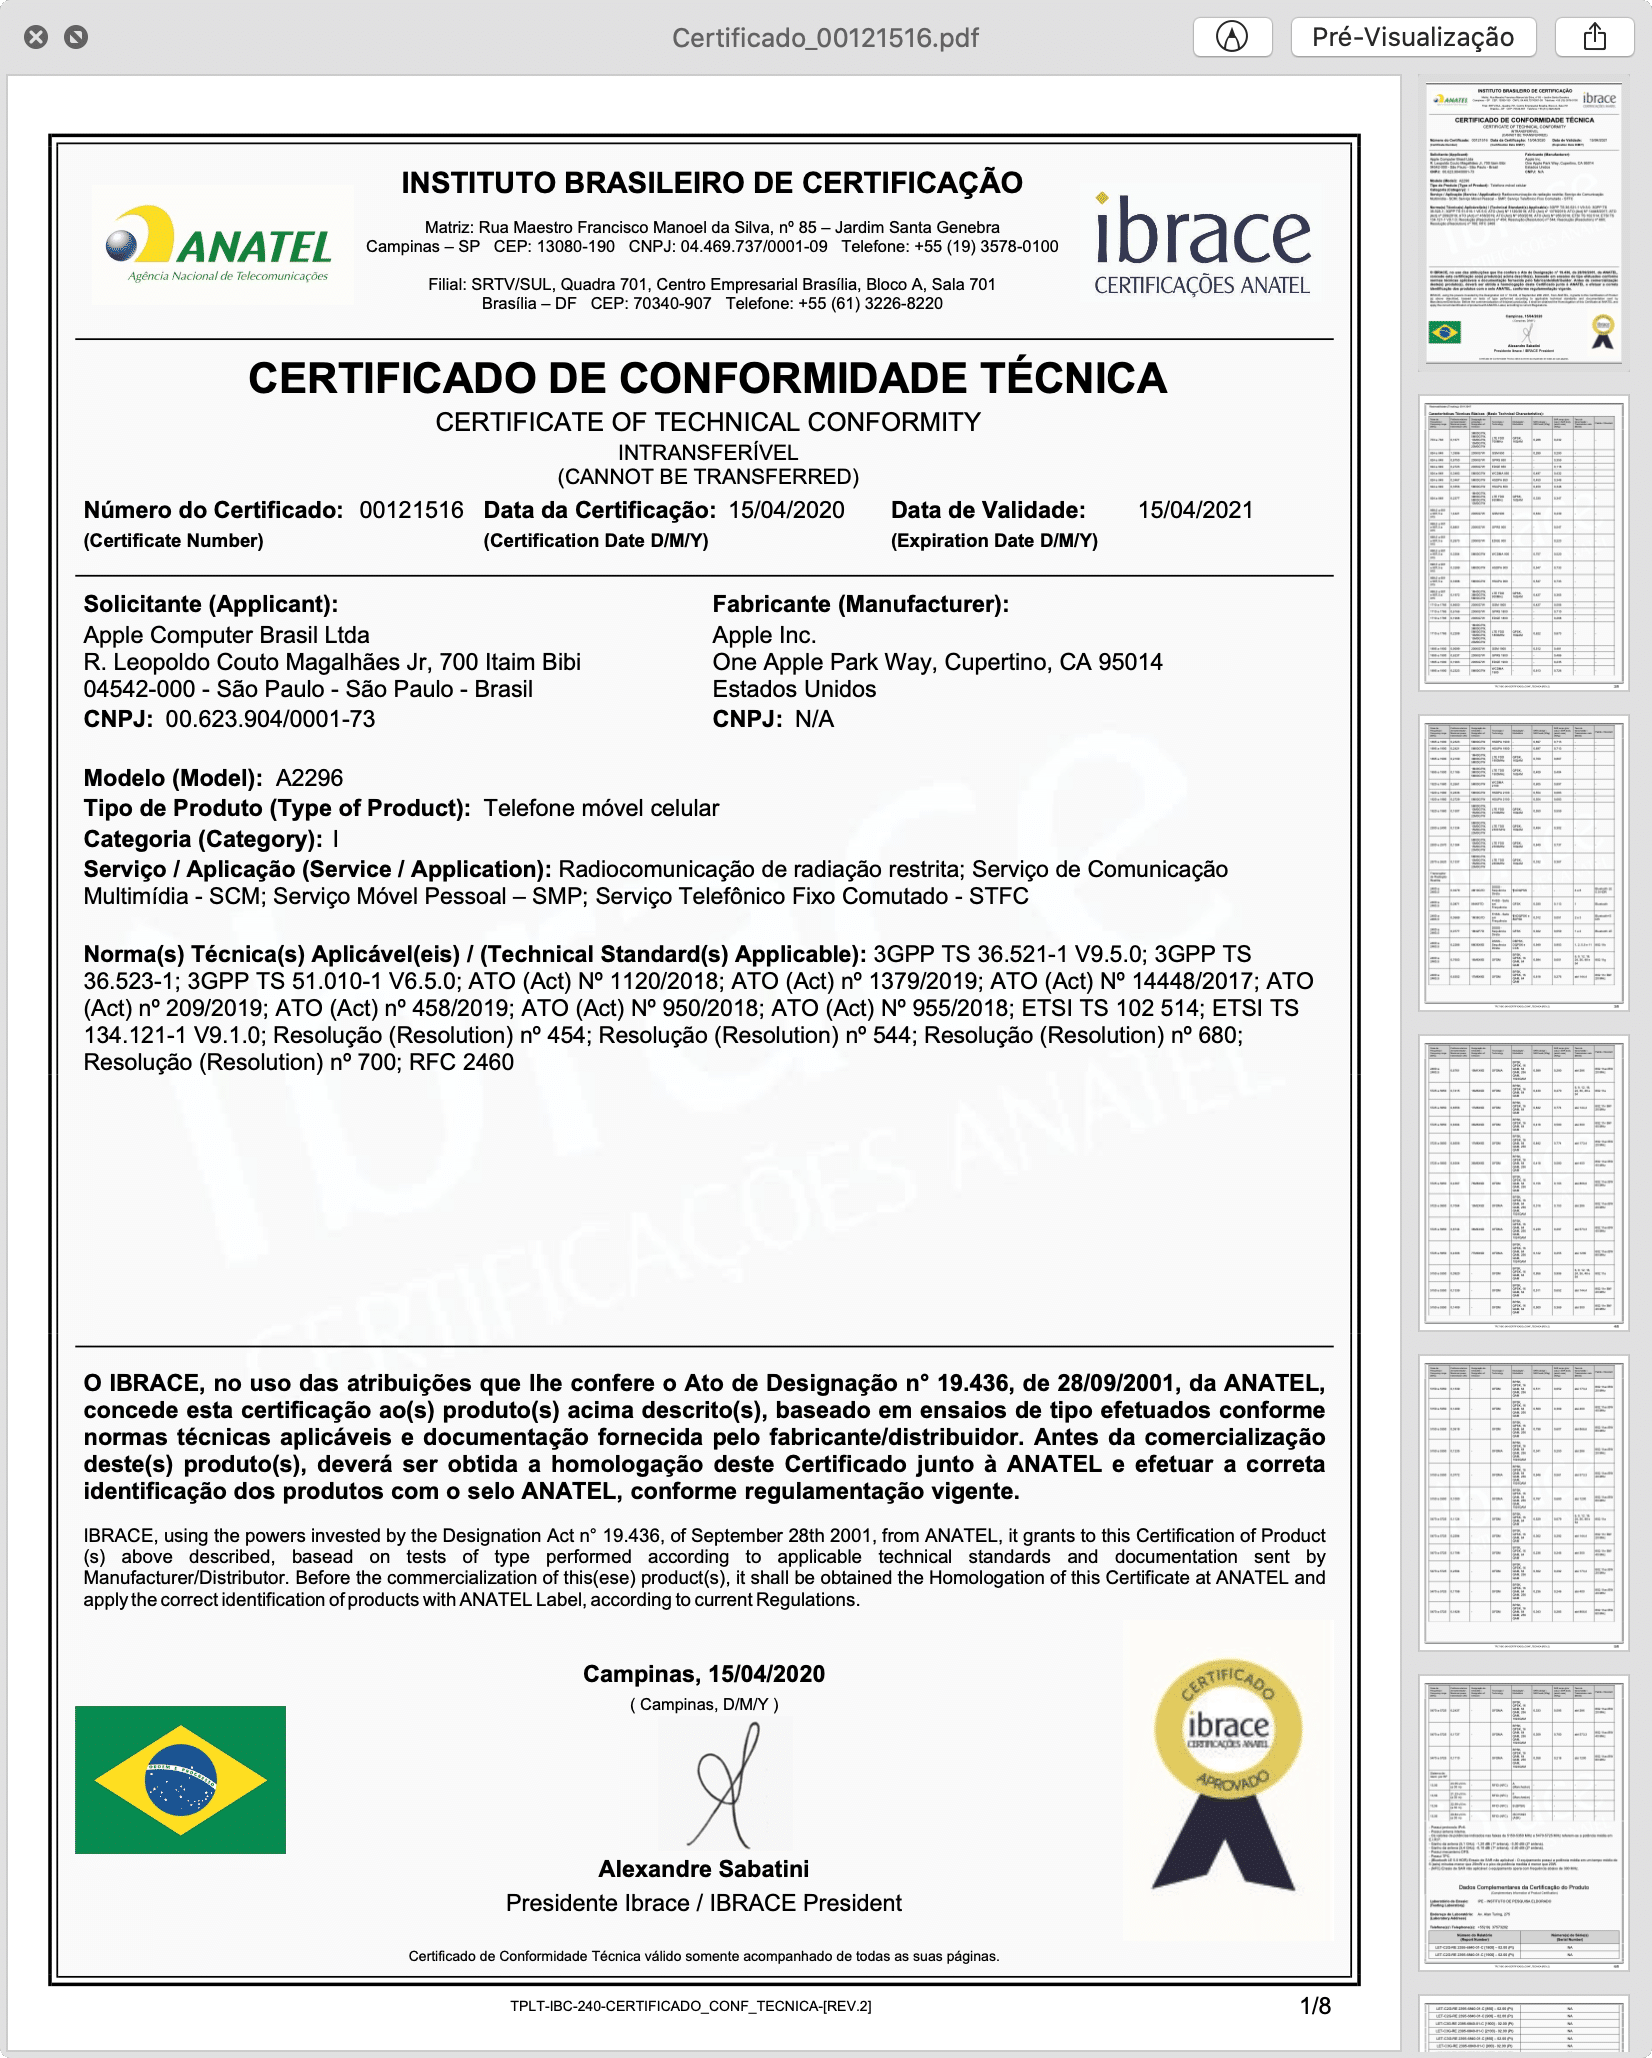 Certificado de Conformidade Técnica do novo iPhone SE